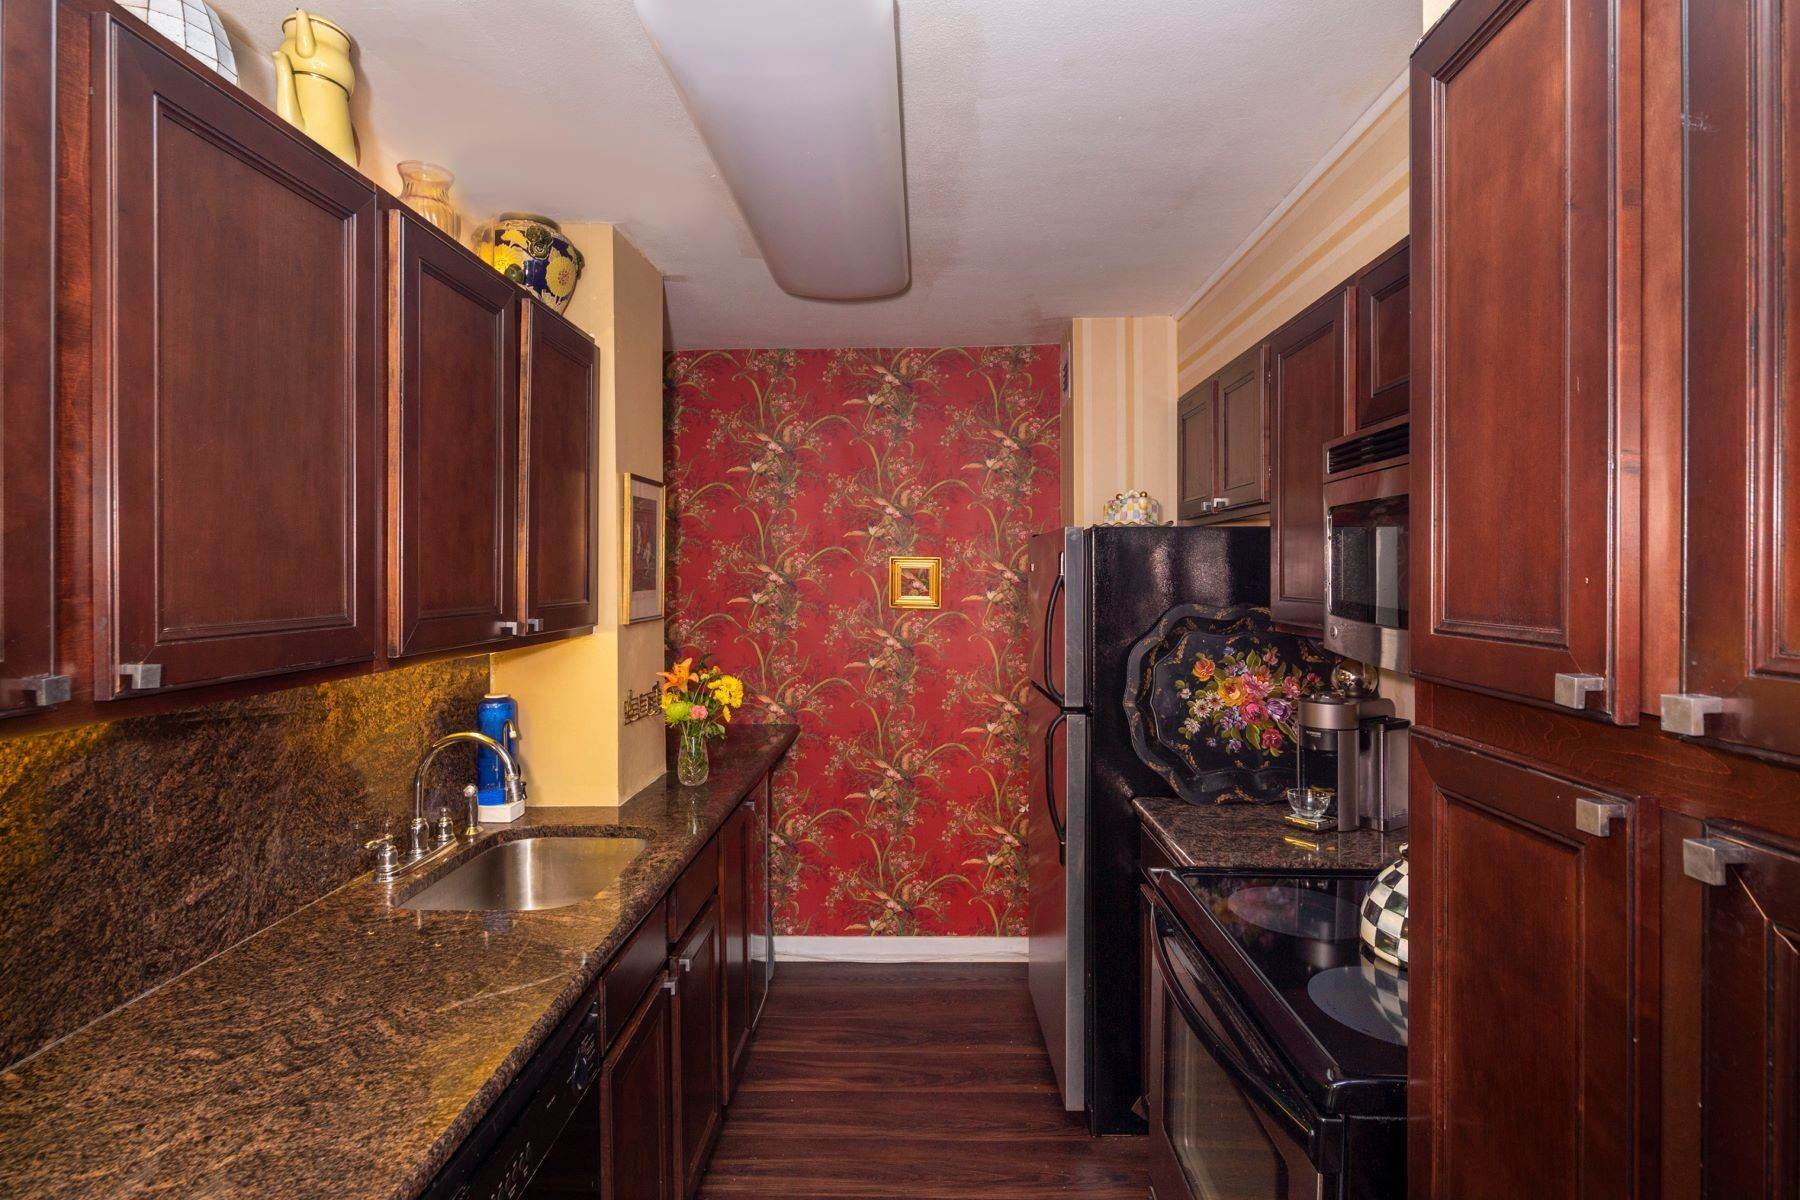 11. Apartments for Sale at 224-226 W RITTENHOUSE SQ #2001-2, 2001-2 Philadelphia, Pennsylvania 19103 United States